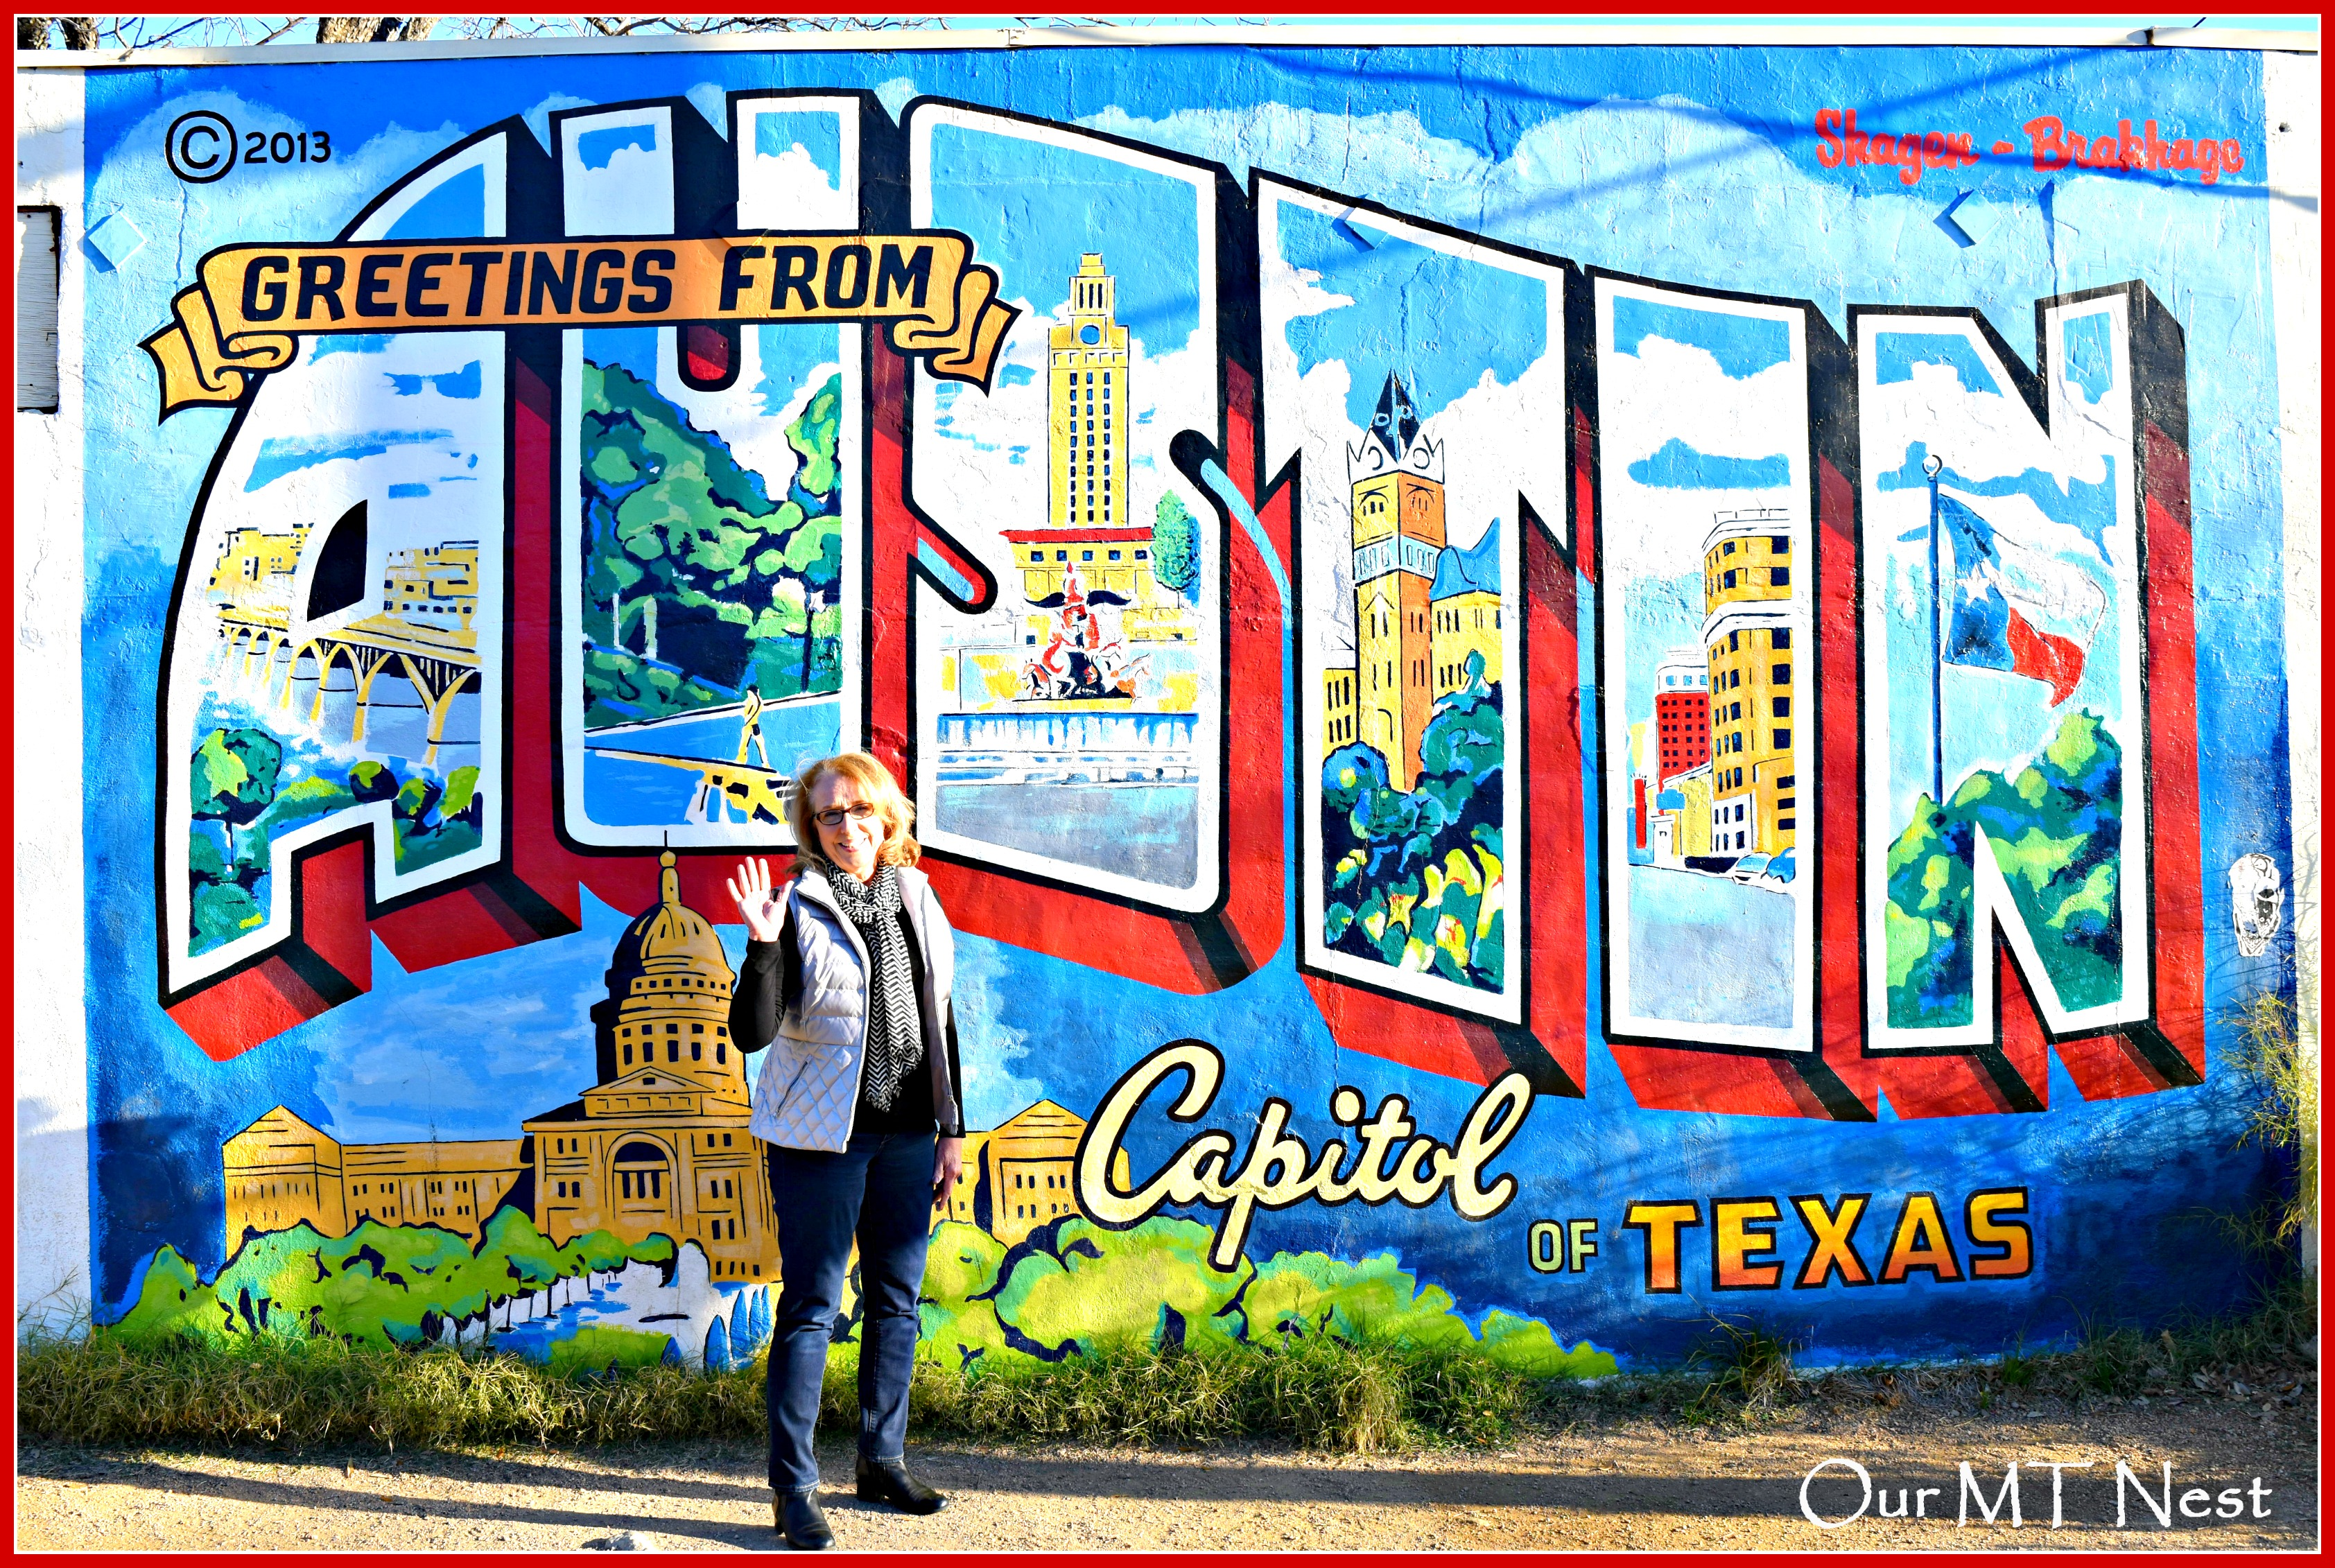 Travel diary greetings from austin greetings from austin texas we arrived here last tuesday and so far were really enjoying our austin explorations m4hsunfo